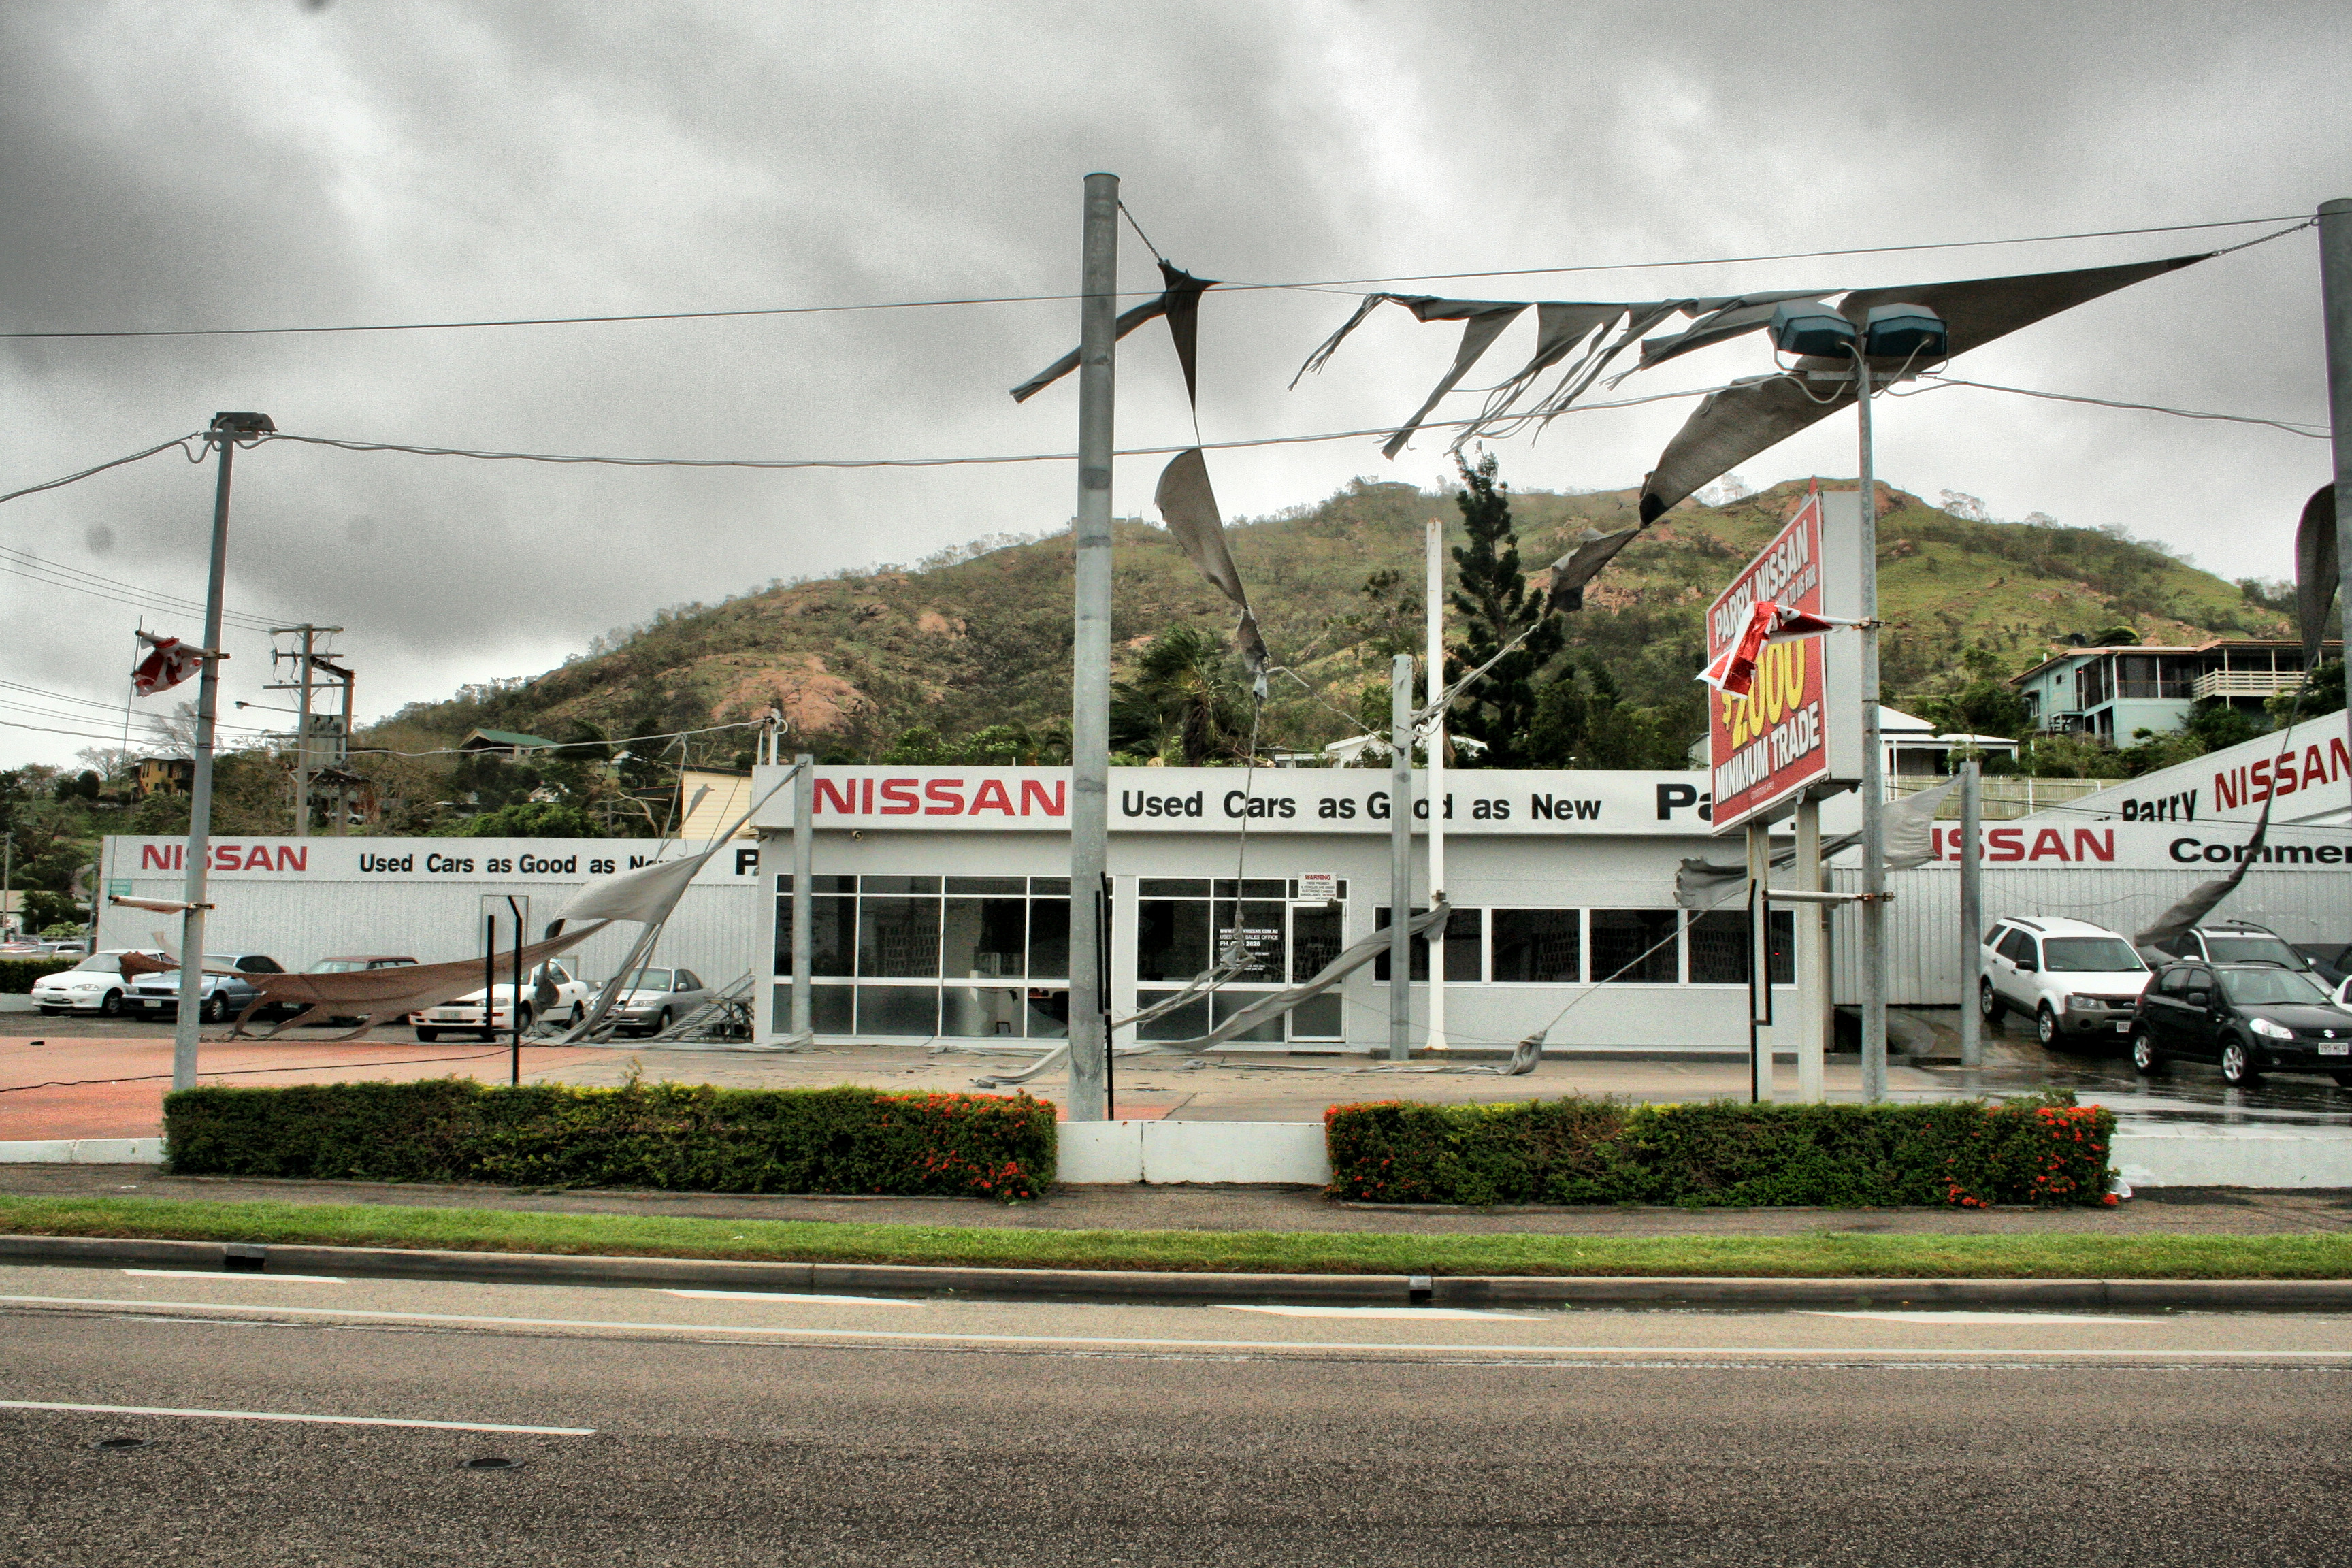 File:Torn shade sails at a used car lot in Townsville.jpg